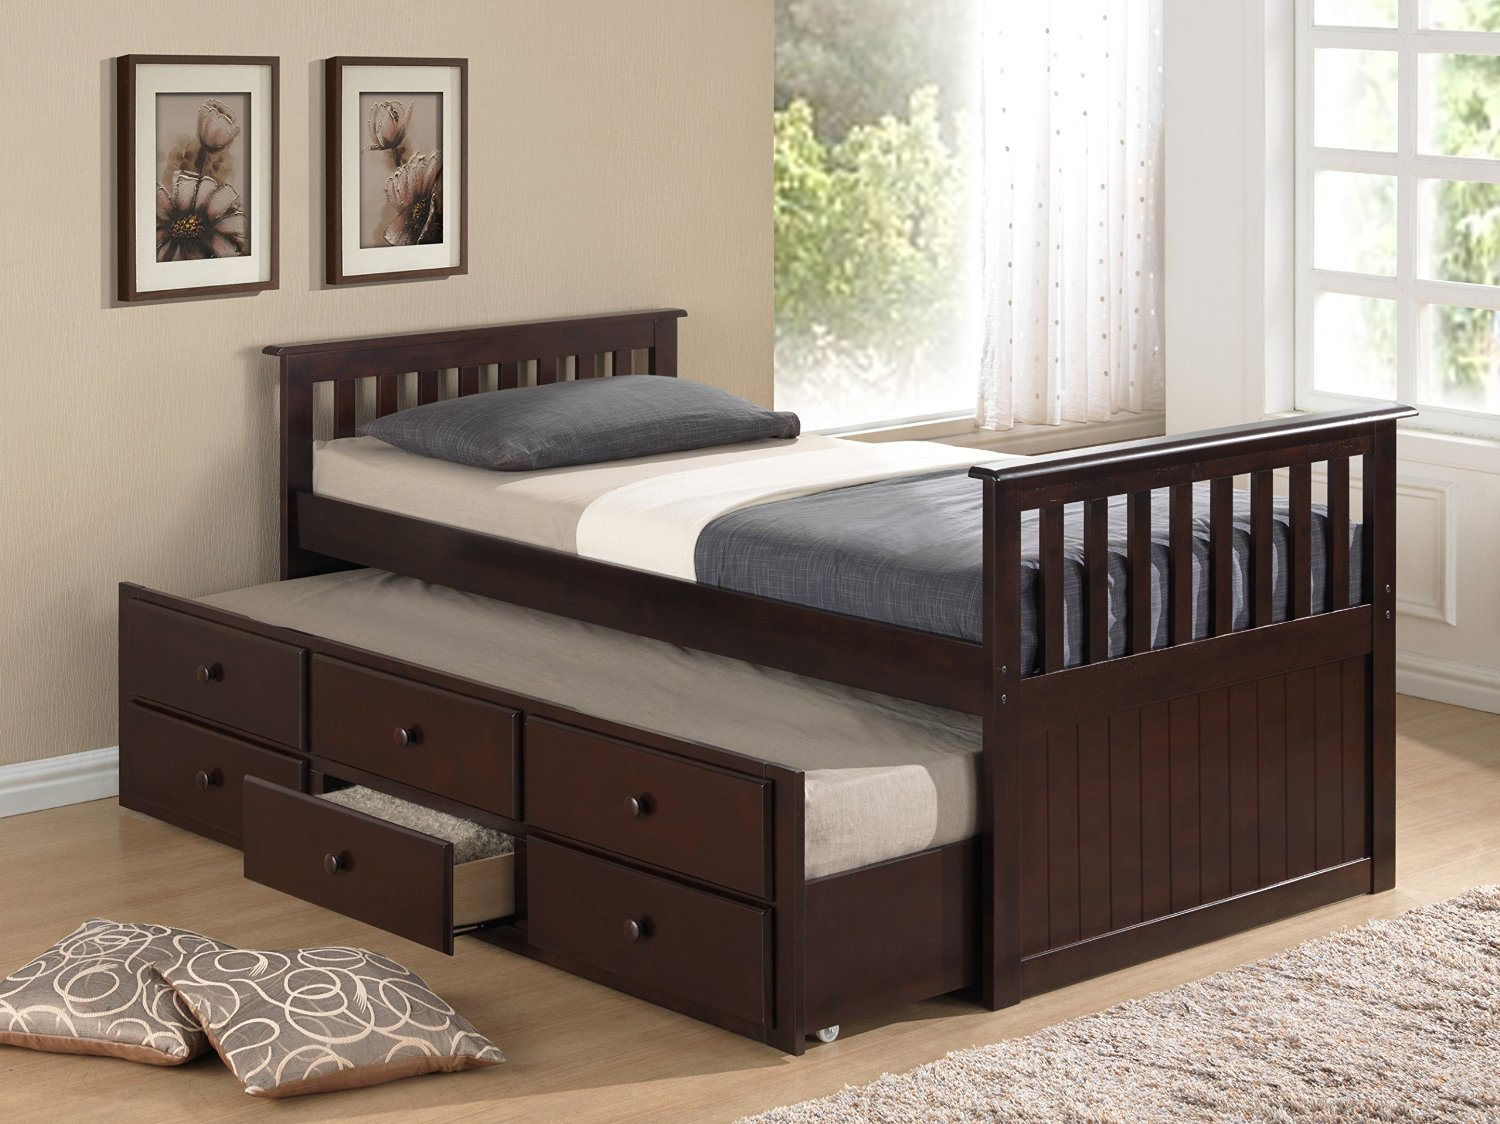 Decisions Wood Metal Bunk Or Upholstered Daybed Diffe Style Beds With Pull Out Guest Trundles Underneath